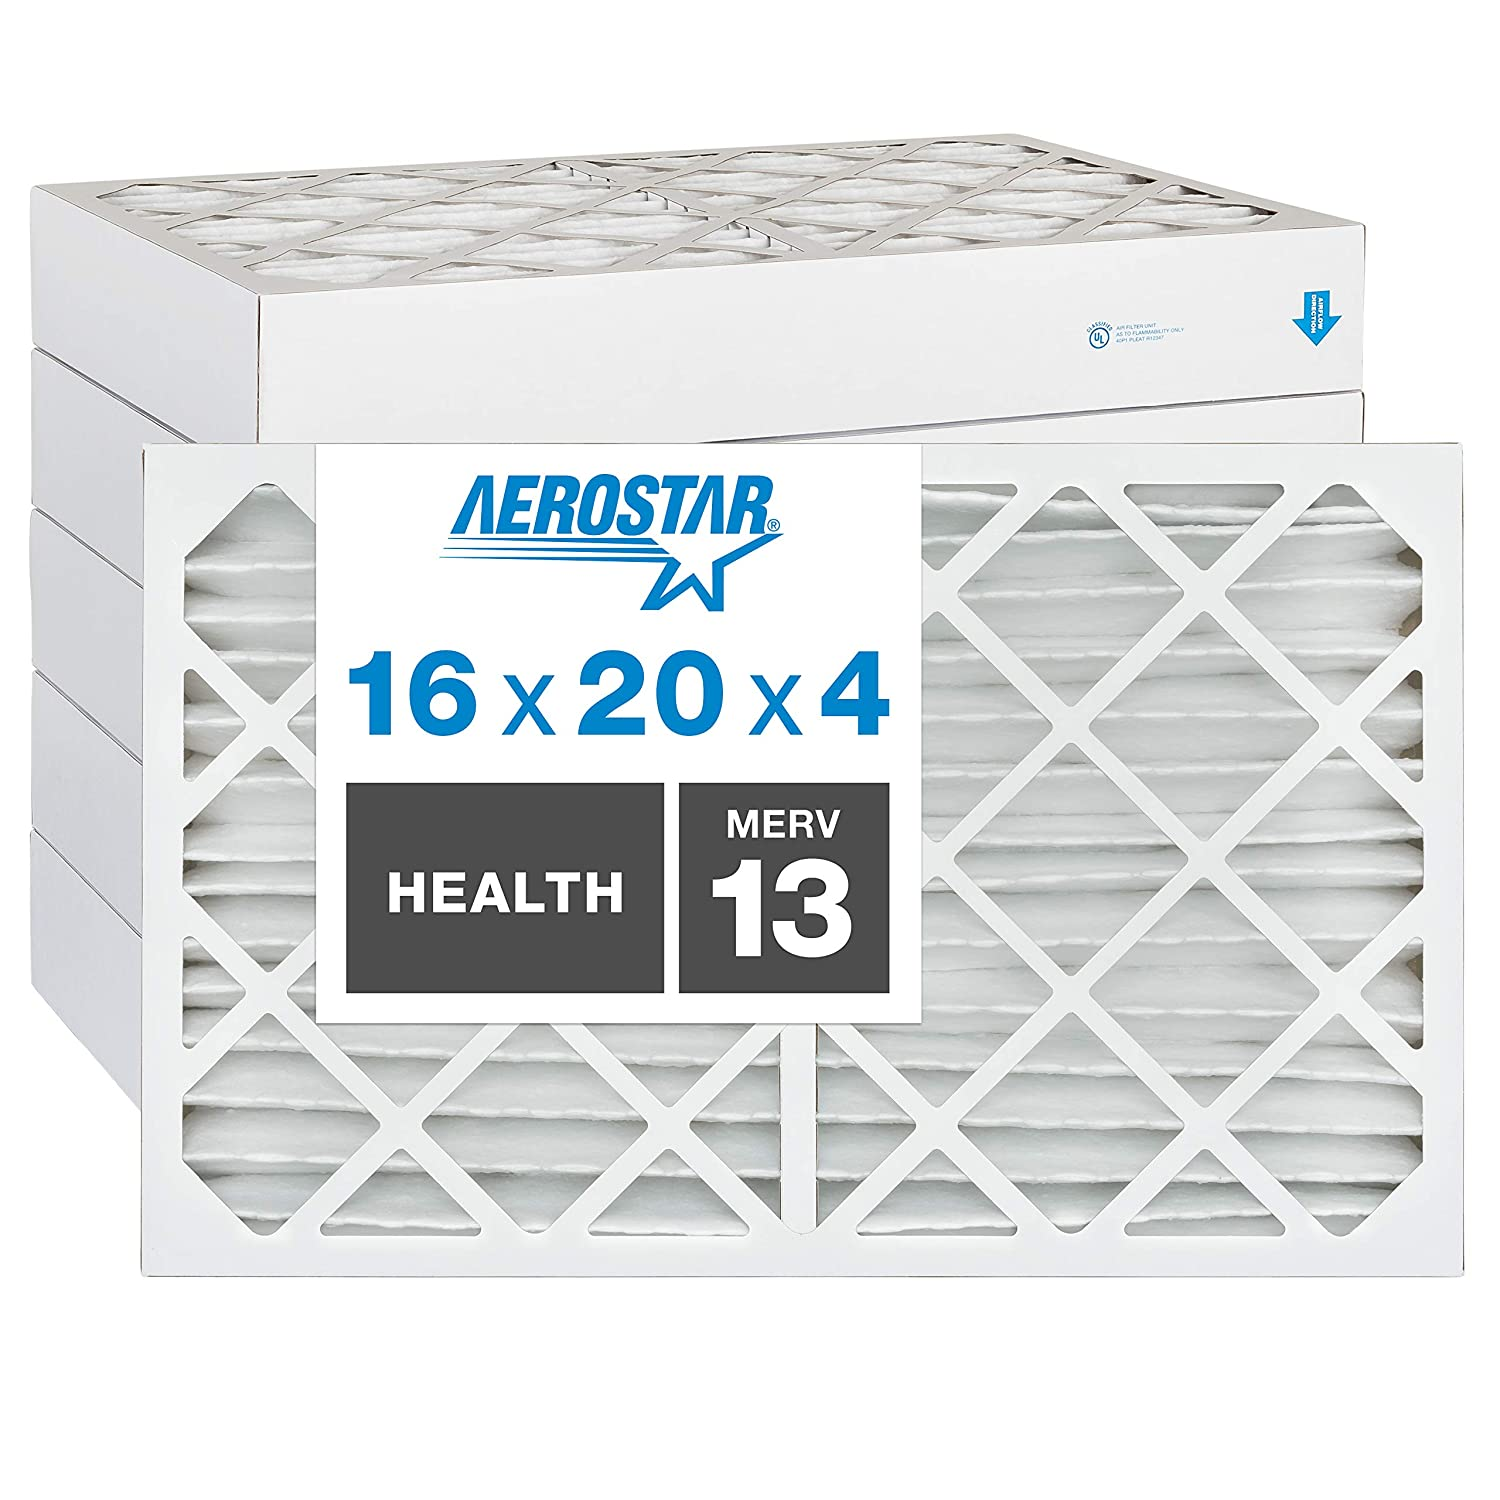 Aerostar Home Max 16x20x4 MERV 13 Pleated Air Filter, Made in the USA, 6-Pack